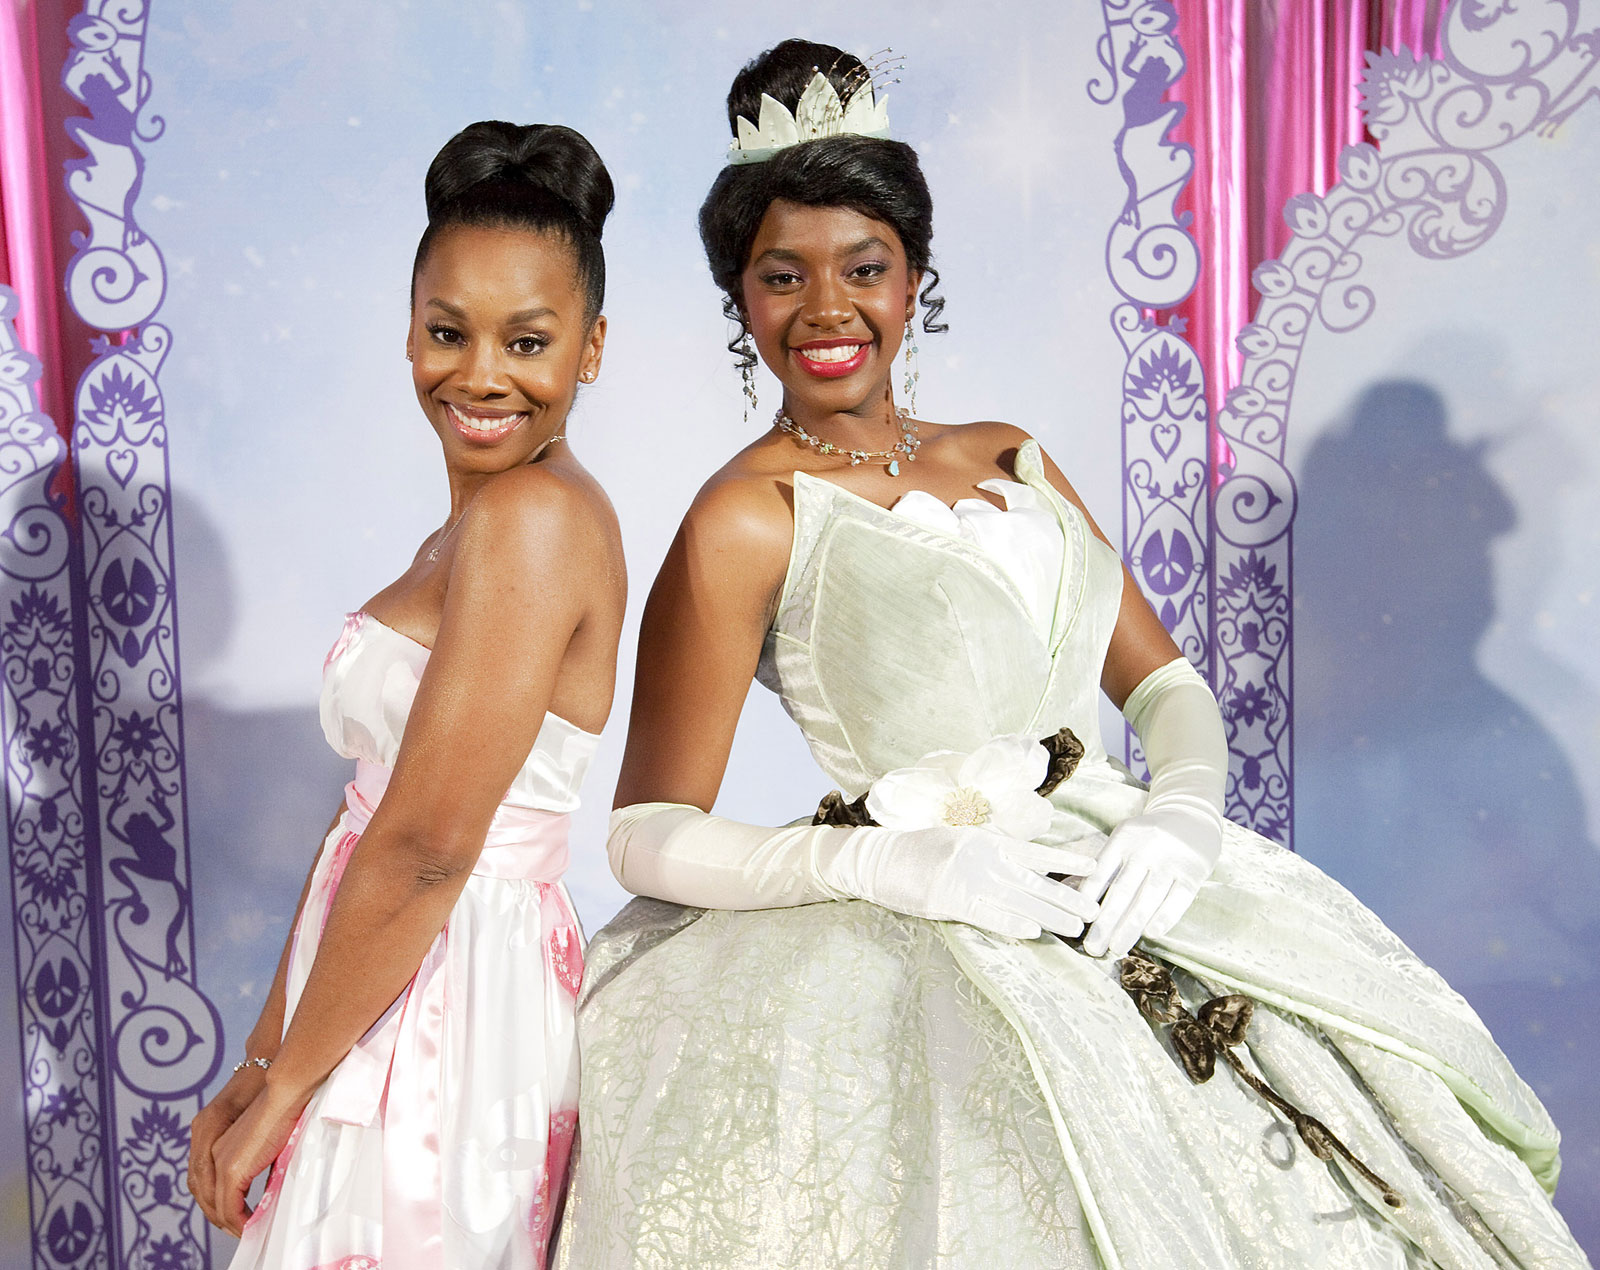 Princess Tiana Times Two Disney Previews Newest Character The